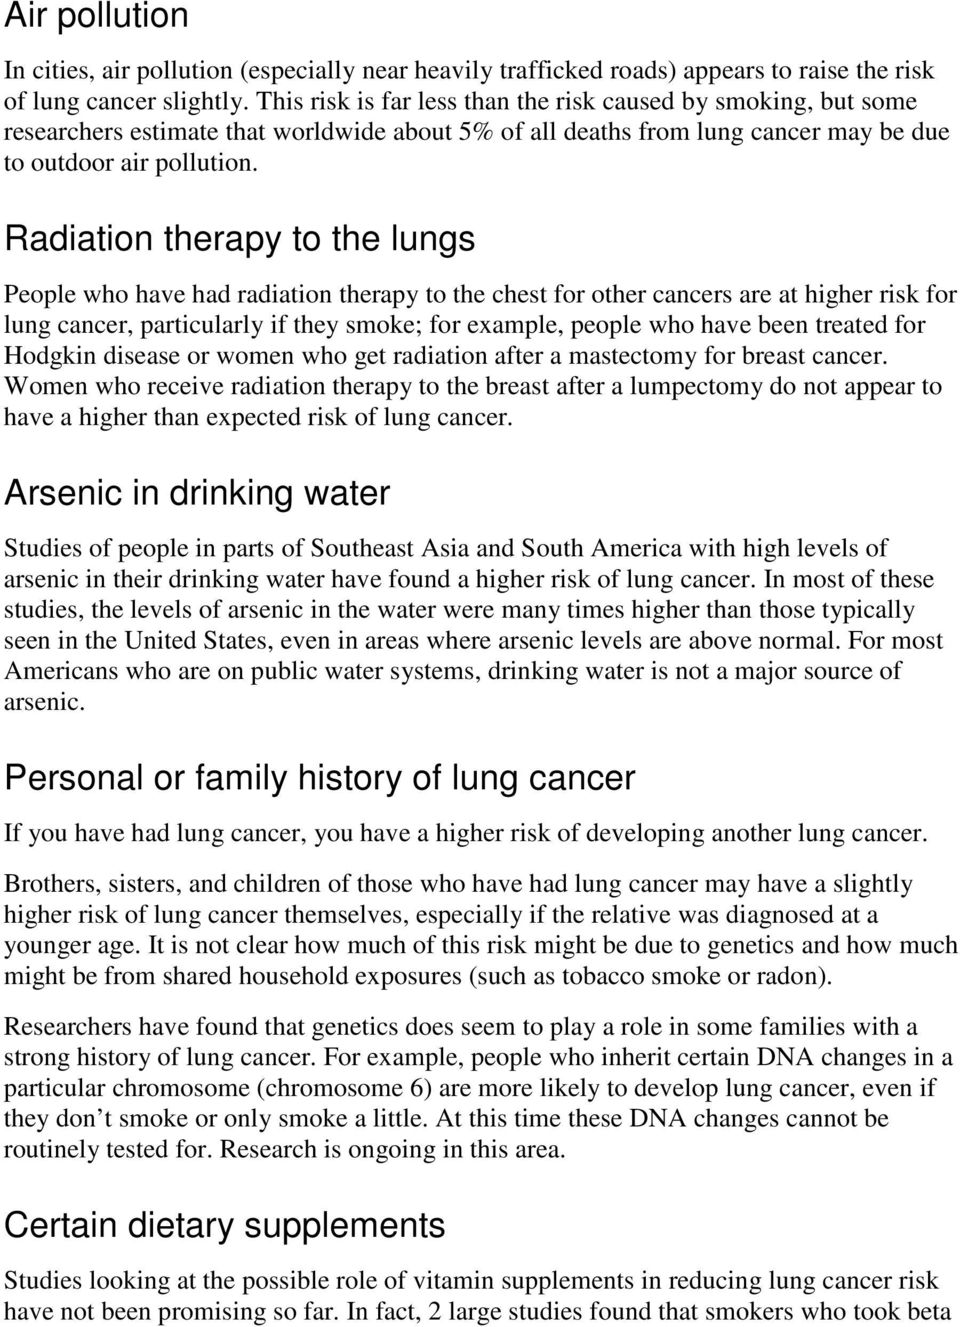 Radiation therapy to the lungs People who have had radiation therapy to the chest for other cancers are at higher risk for lung cancer, particularly if they smoke; for example, people who have been